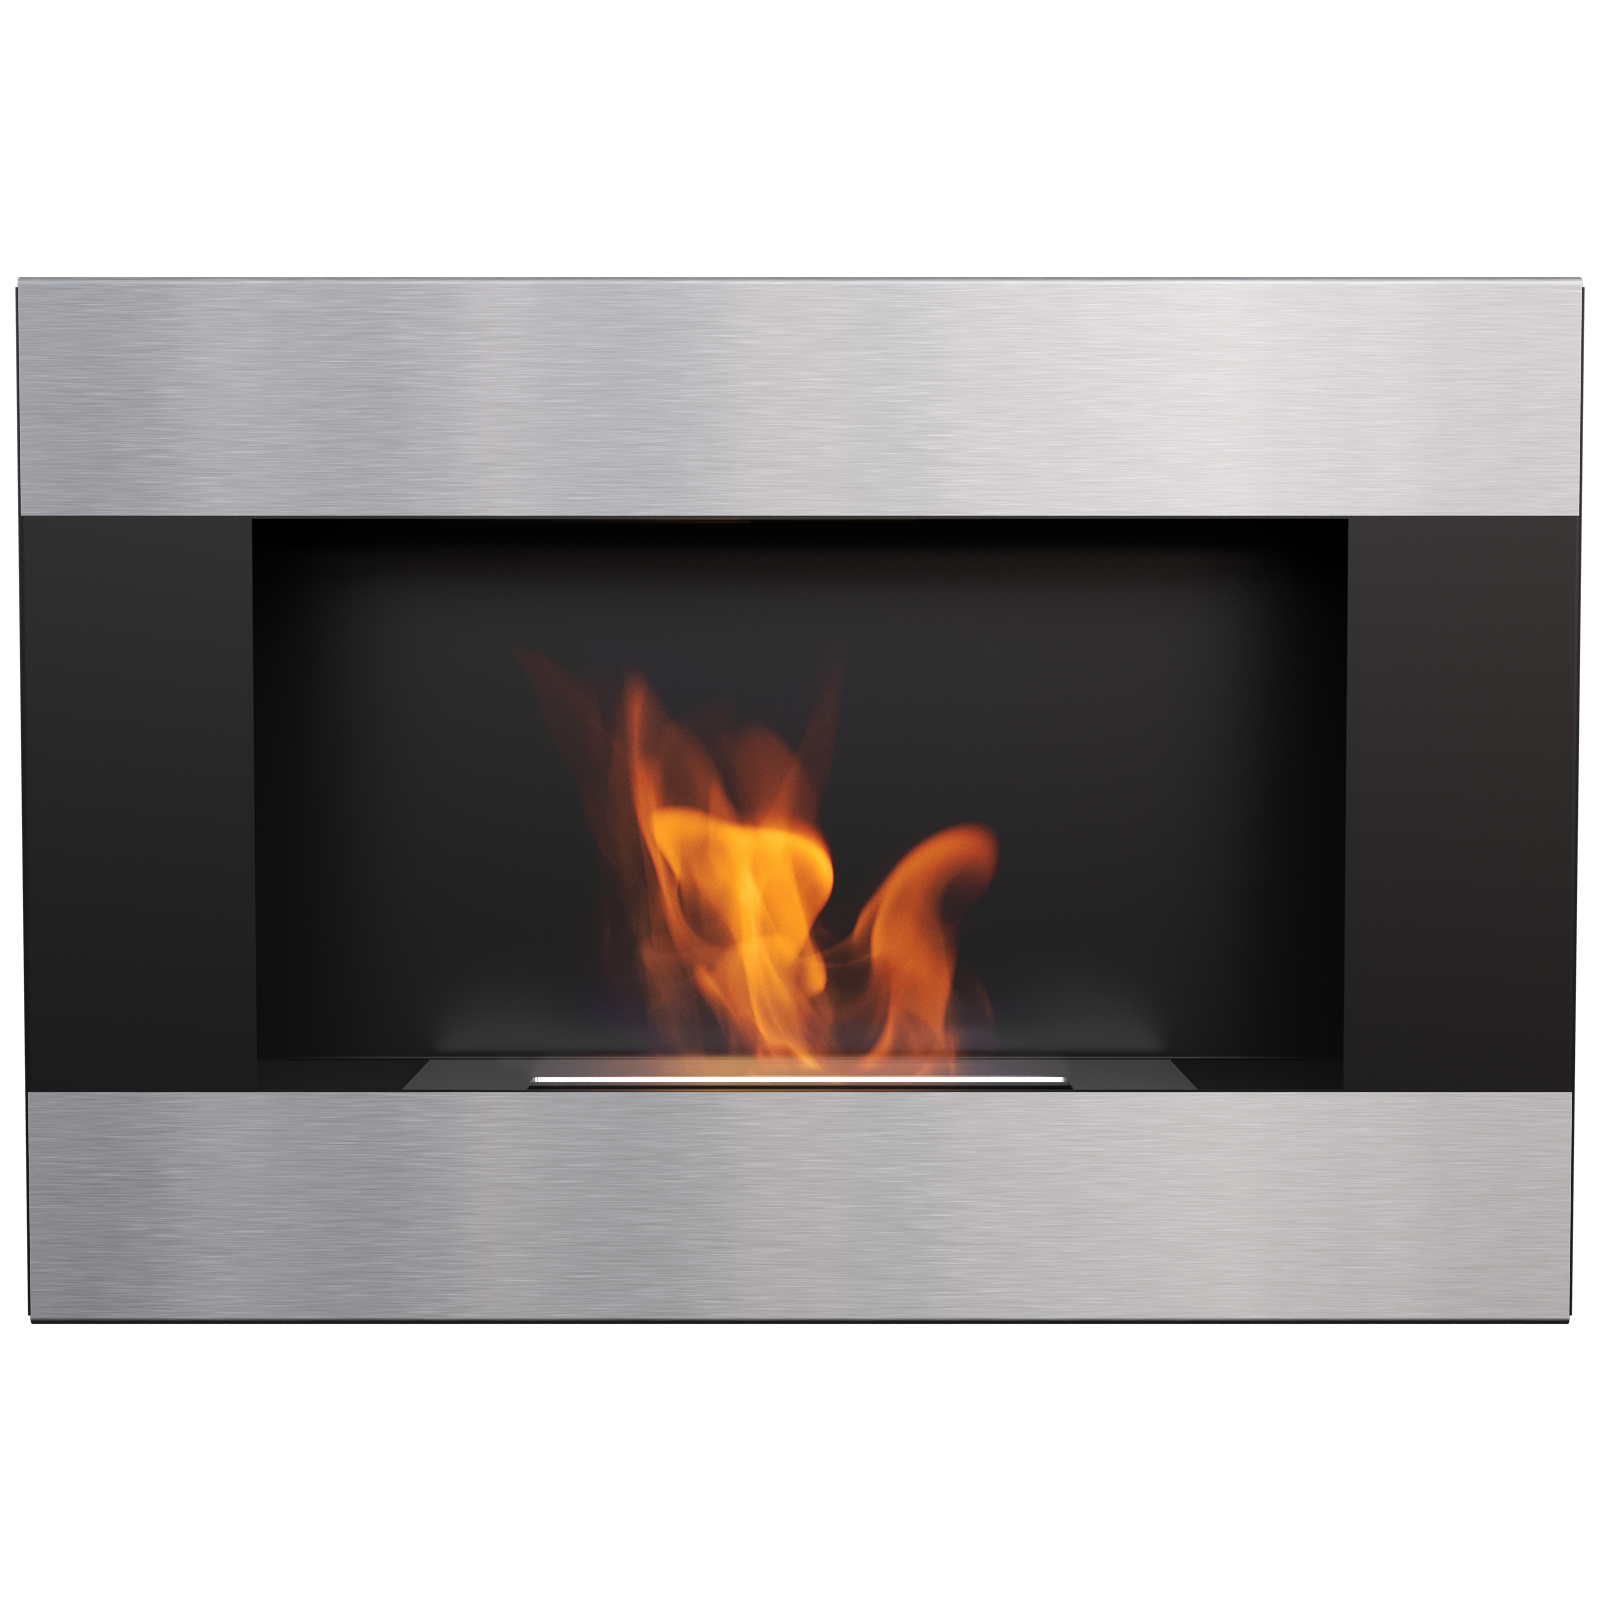 bio fireplace youtube ethanol roma watch freestanding ii